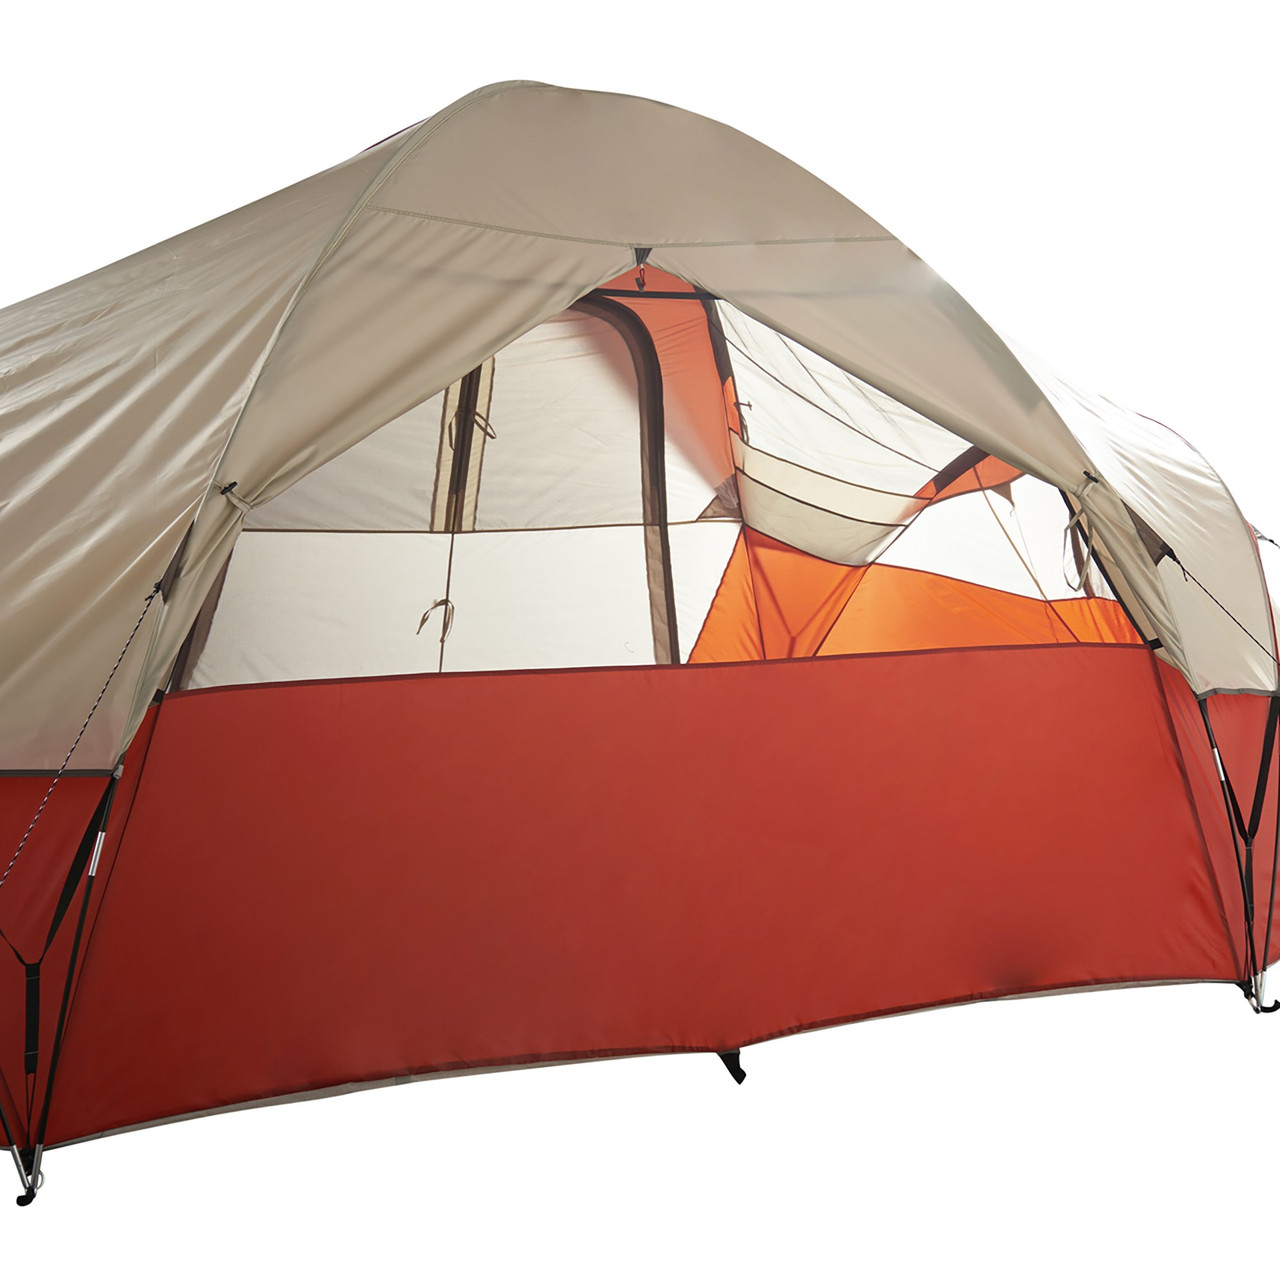 Wenzel Bristlecone 8 Person Dome Tent, showing rear window, opened